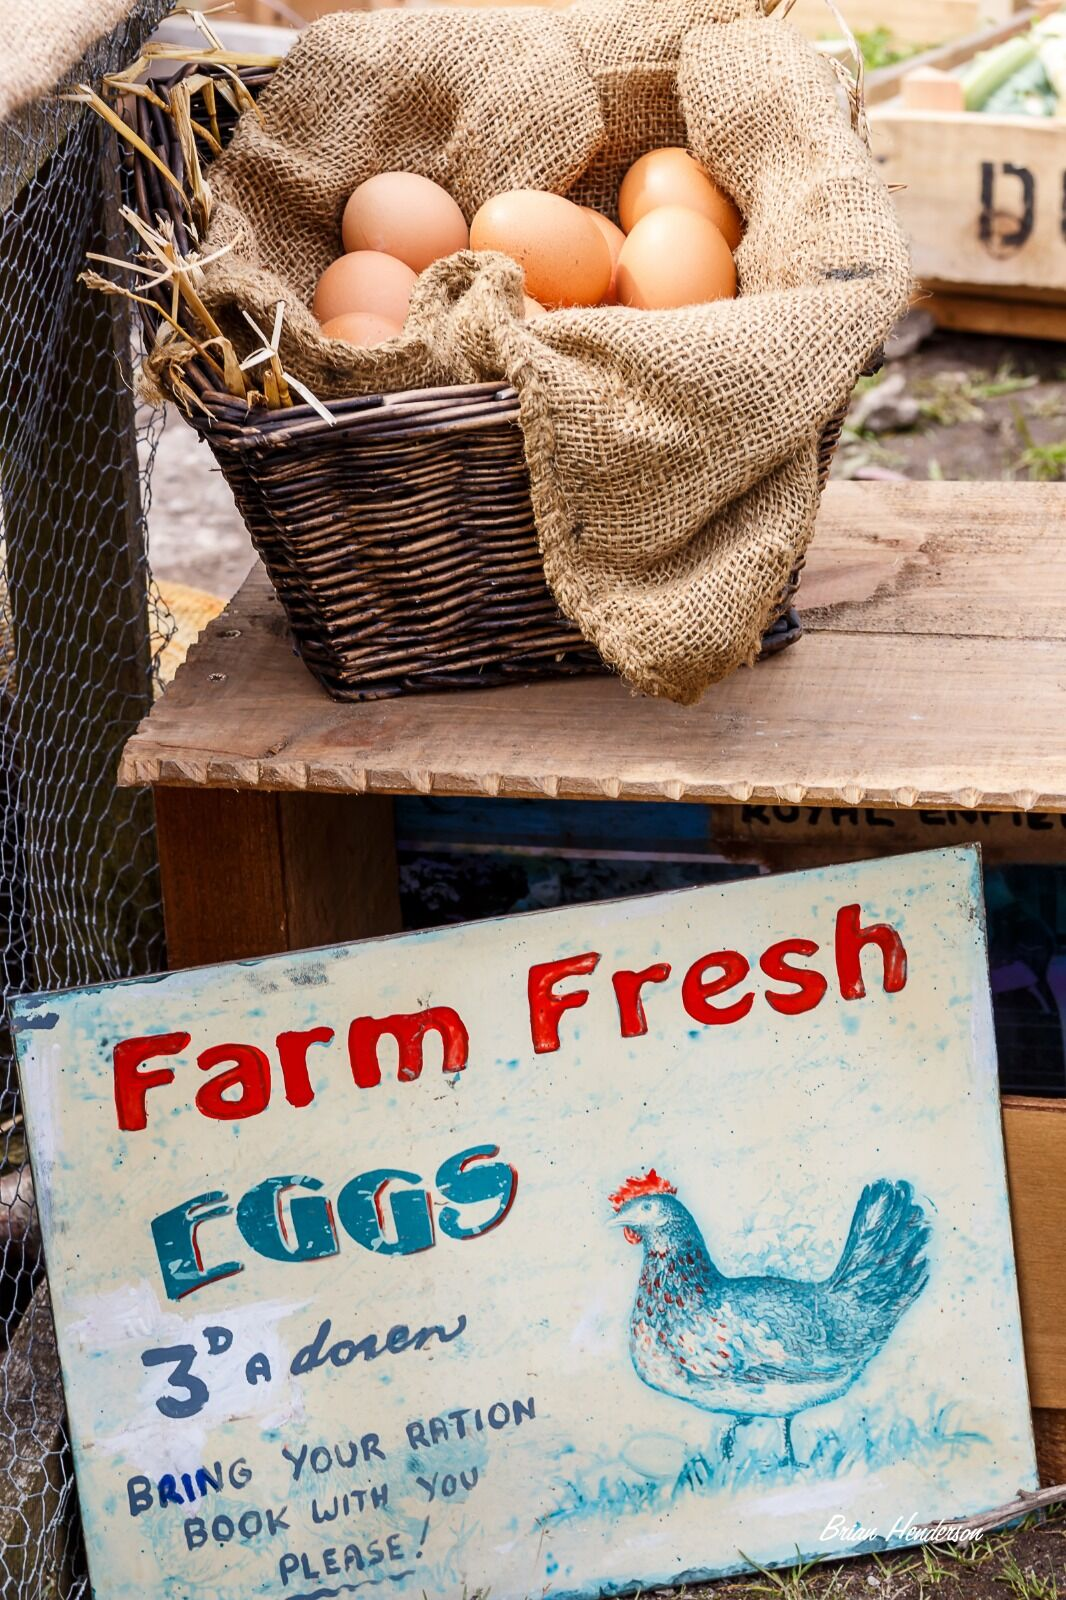 Eggs for sale!